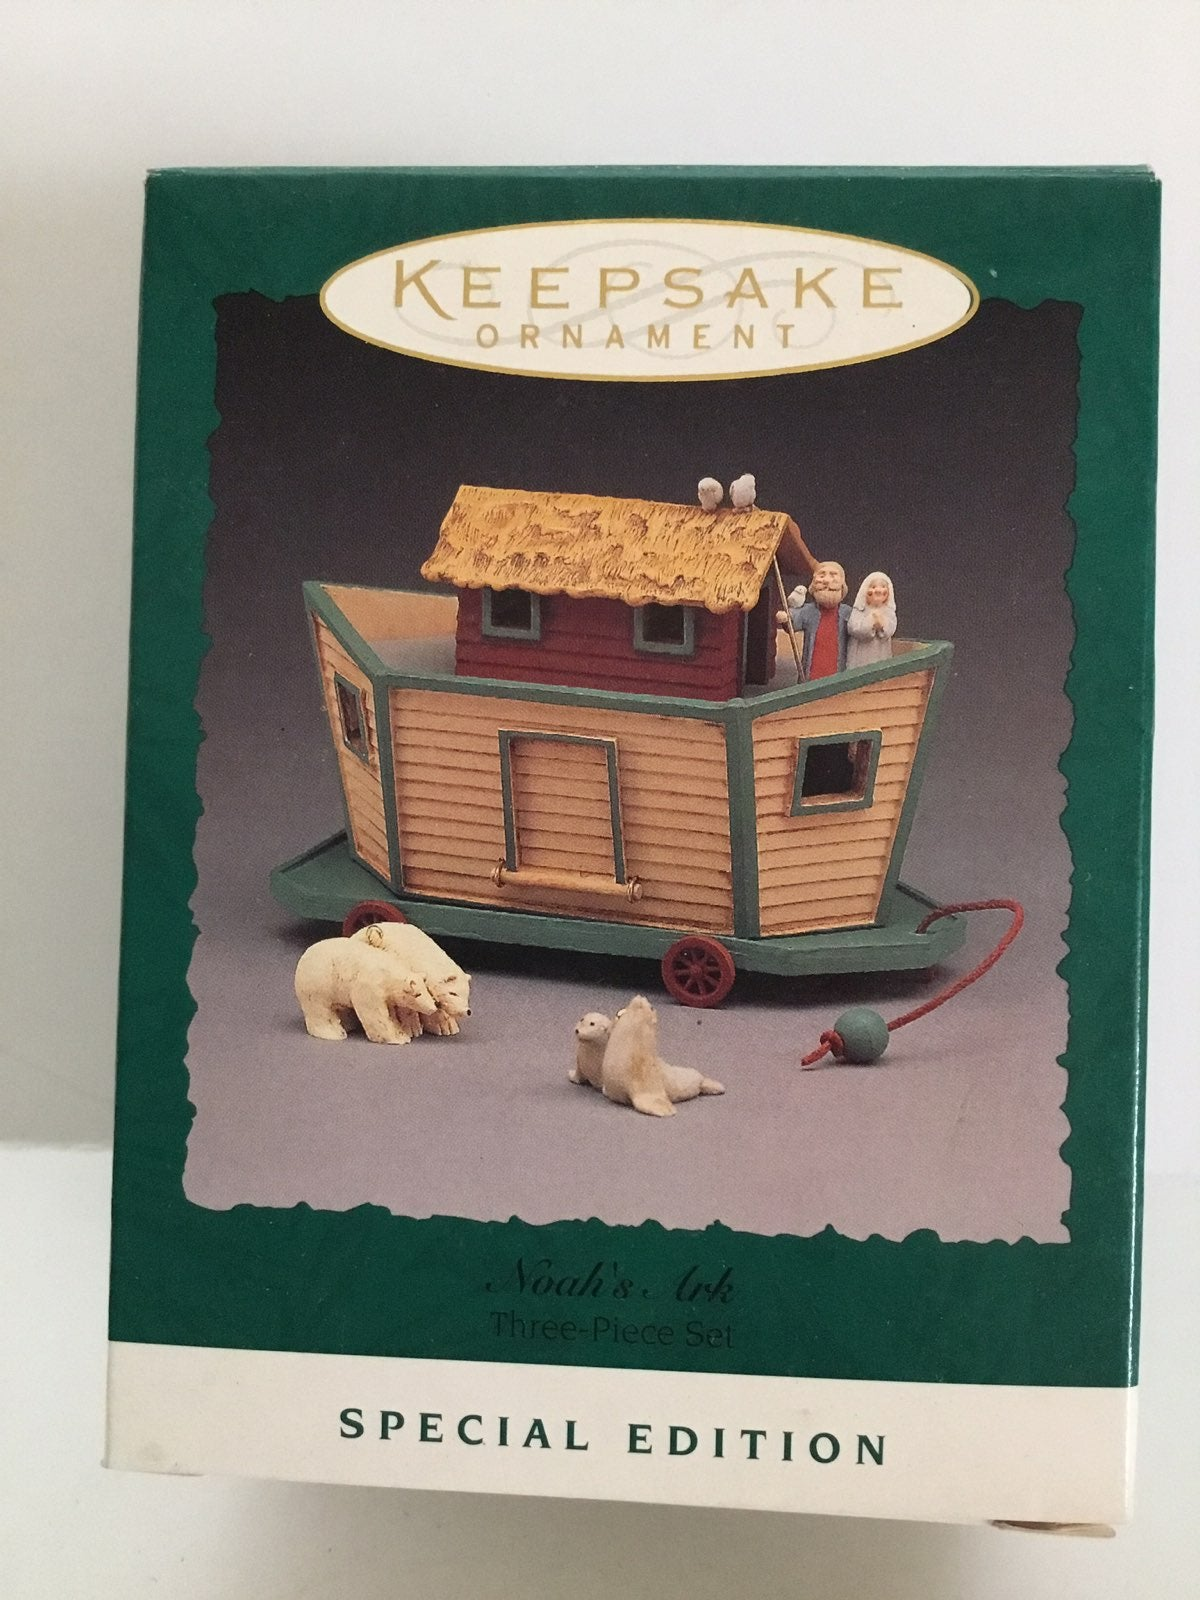 Hallmark Noah's Ark 3 piece Set